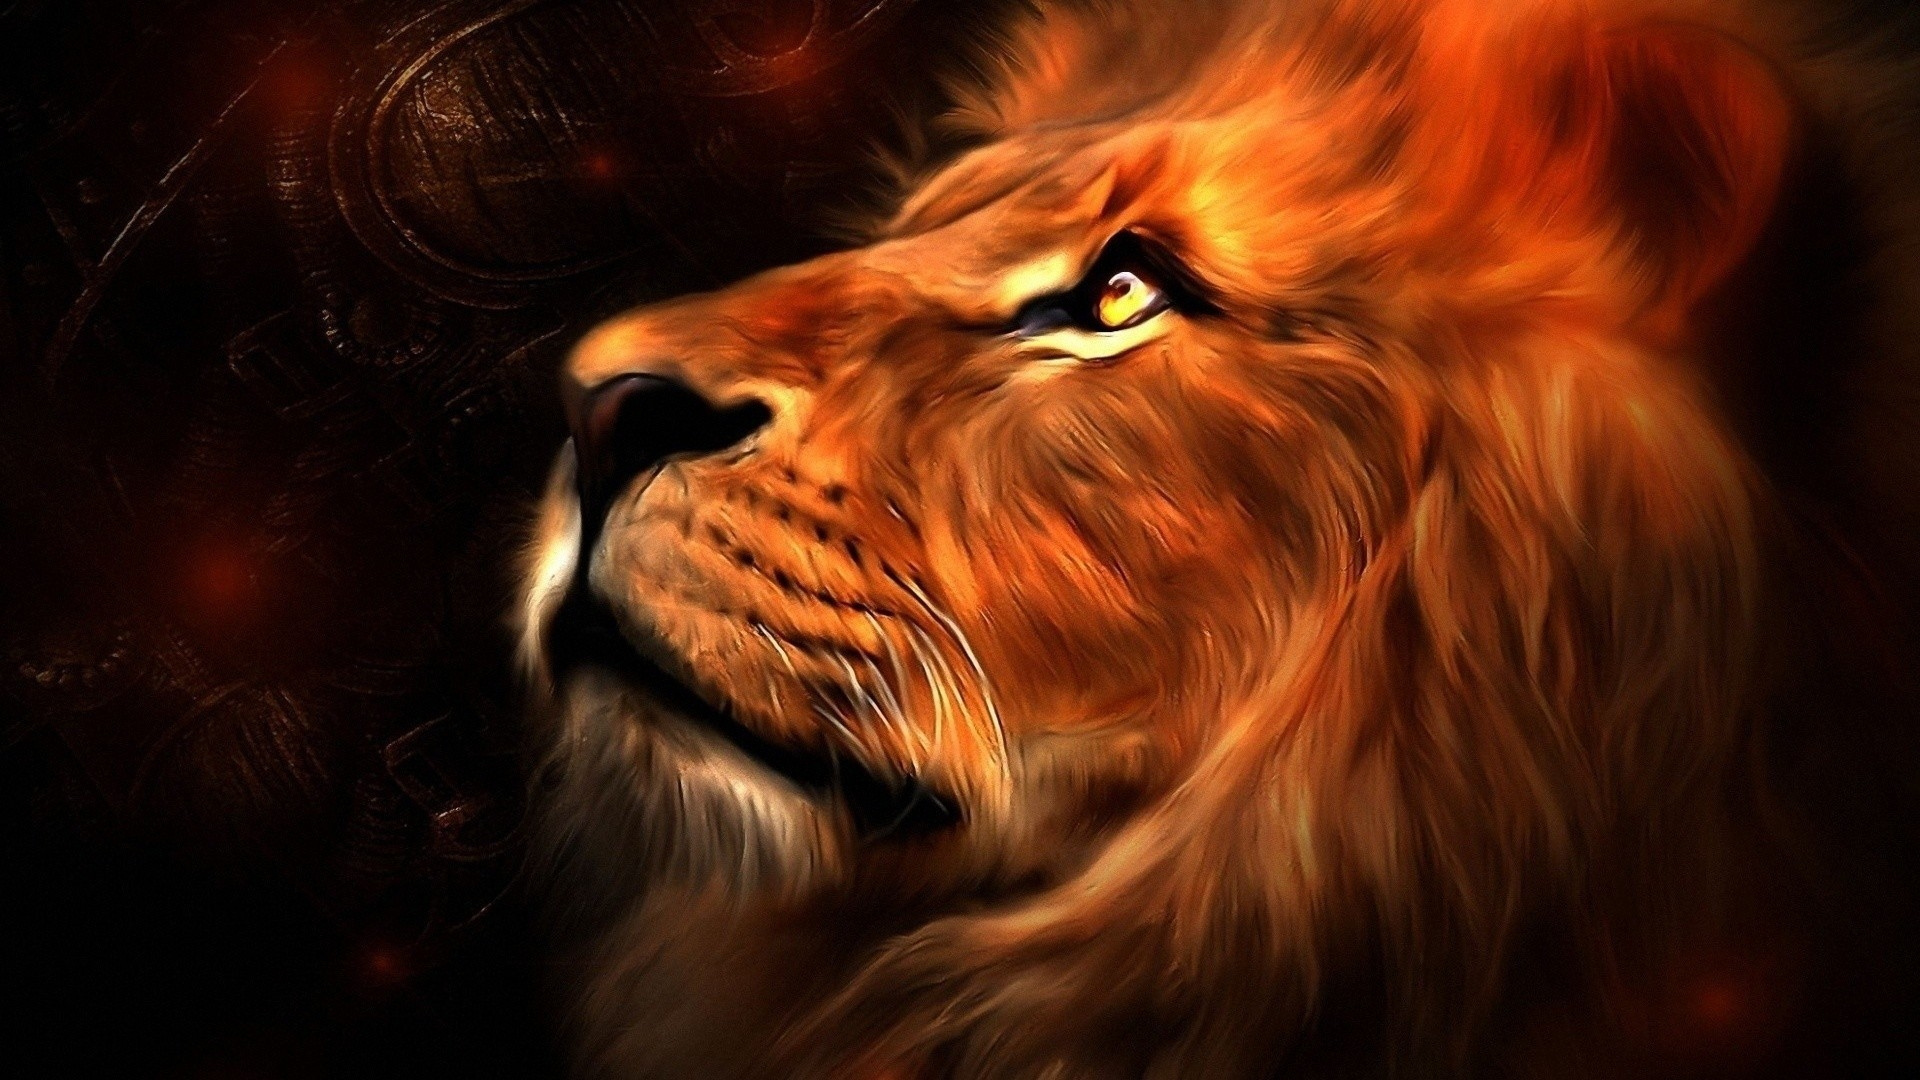 Res: 1920x1080, Roaring Lion Hd Wallpapers · Download .